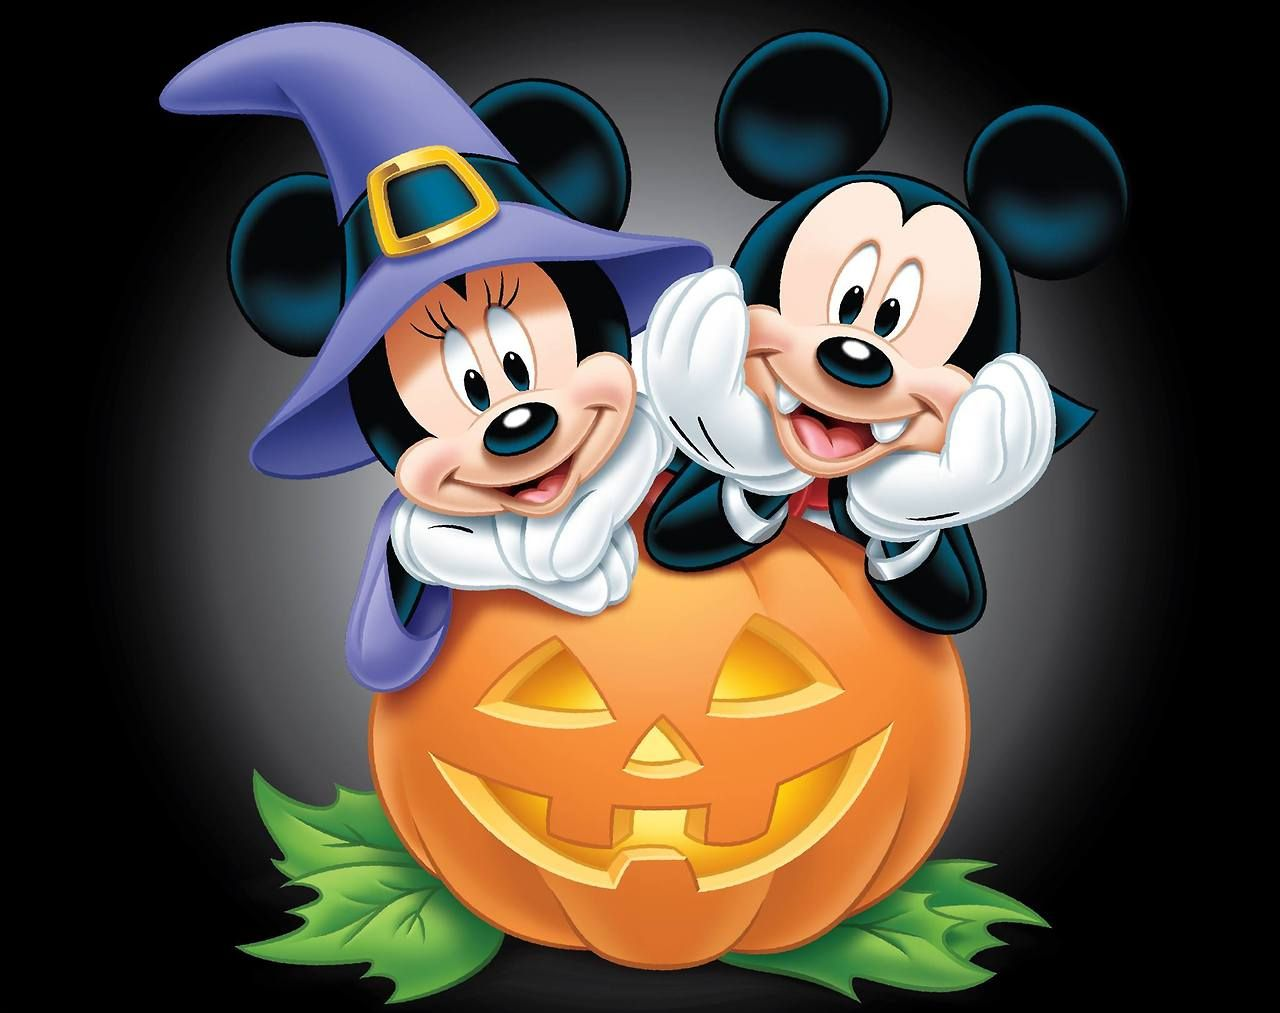 Mickey Mouse Halloween Pictures 04 Jpg 1280 1013 Mickey Halloween Mickey Mouse Halloween Disney Halloween